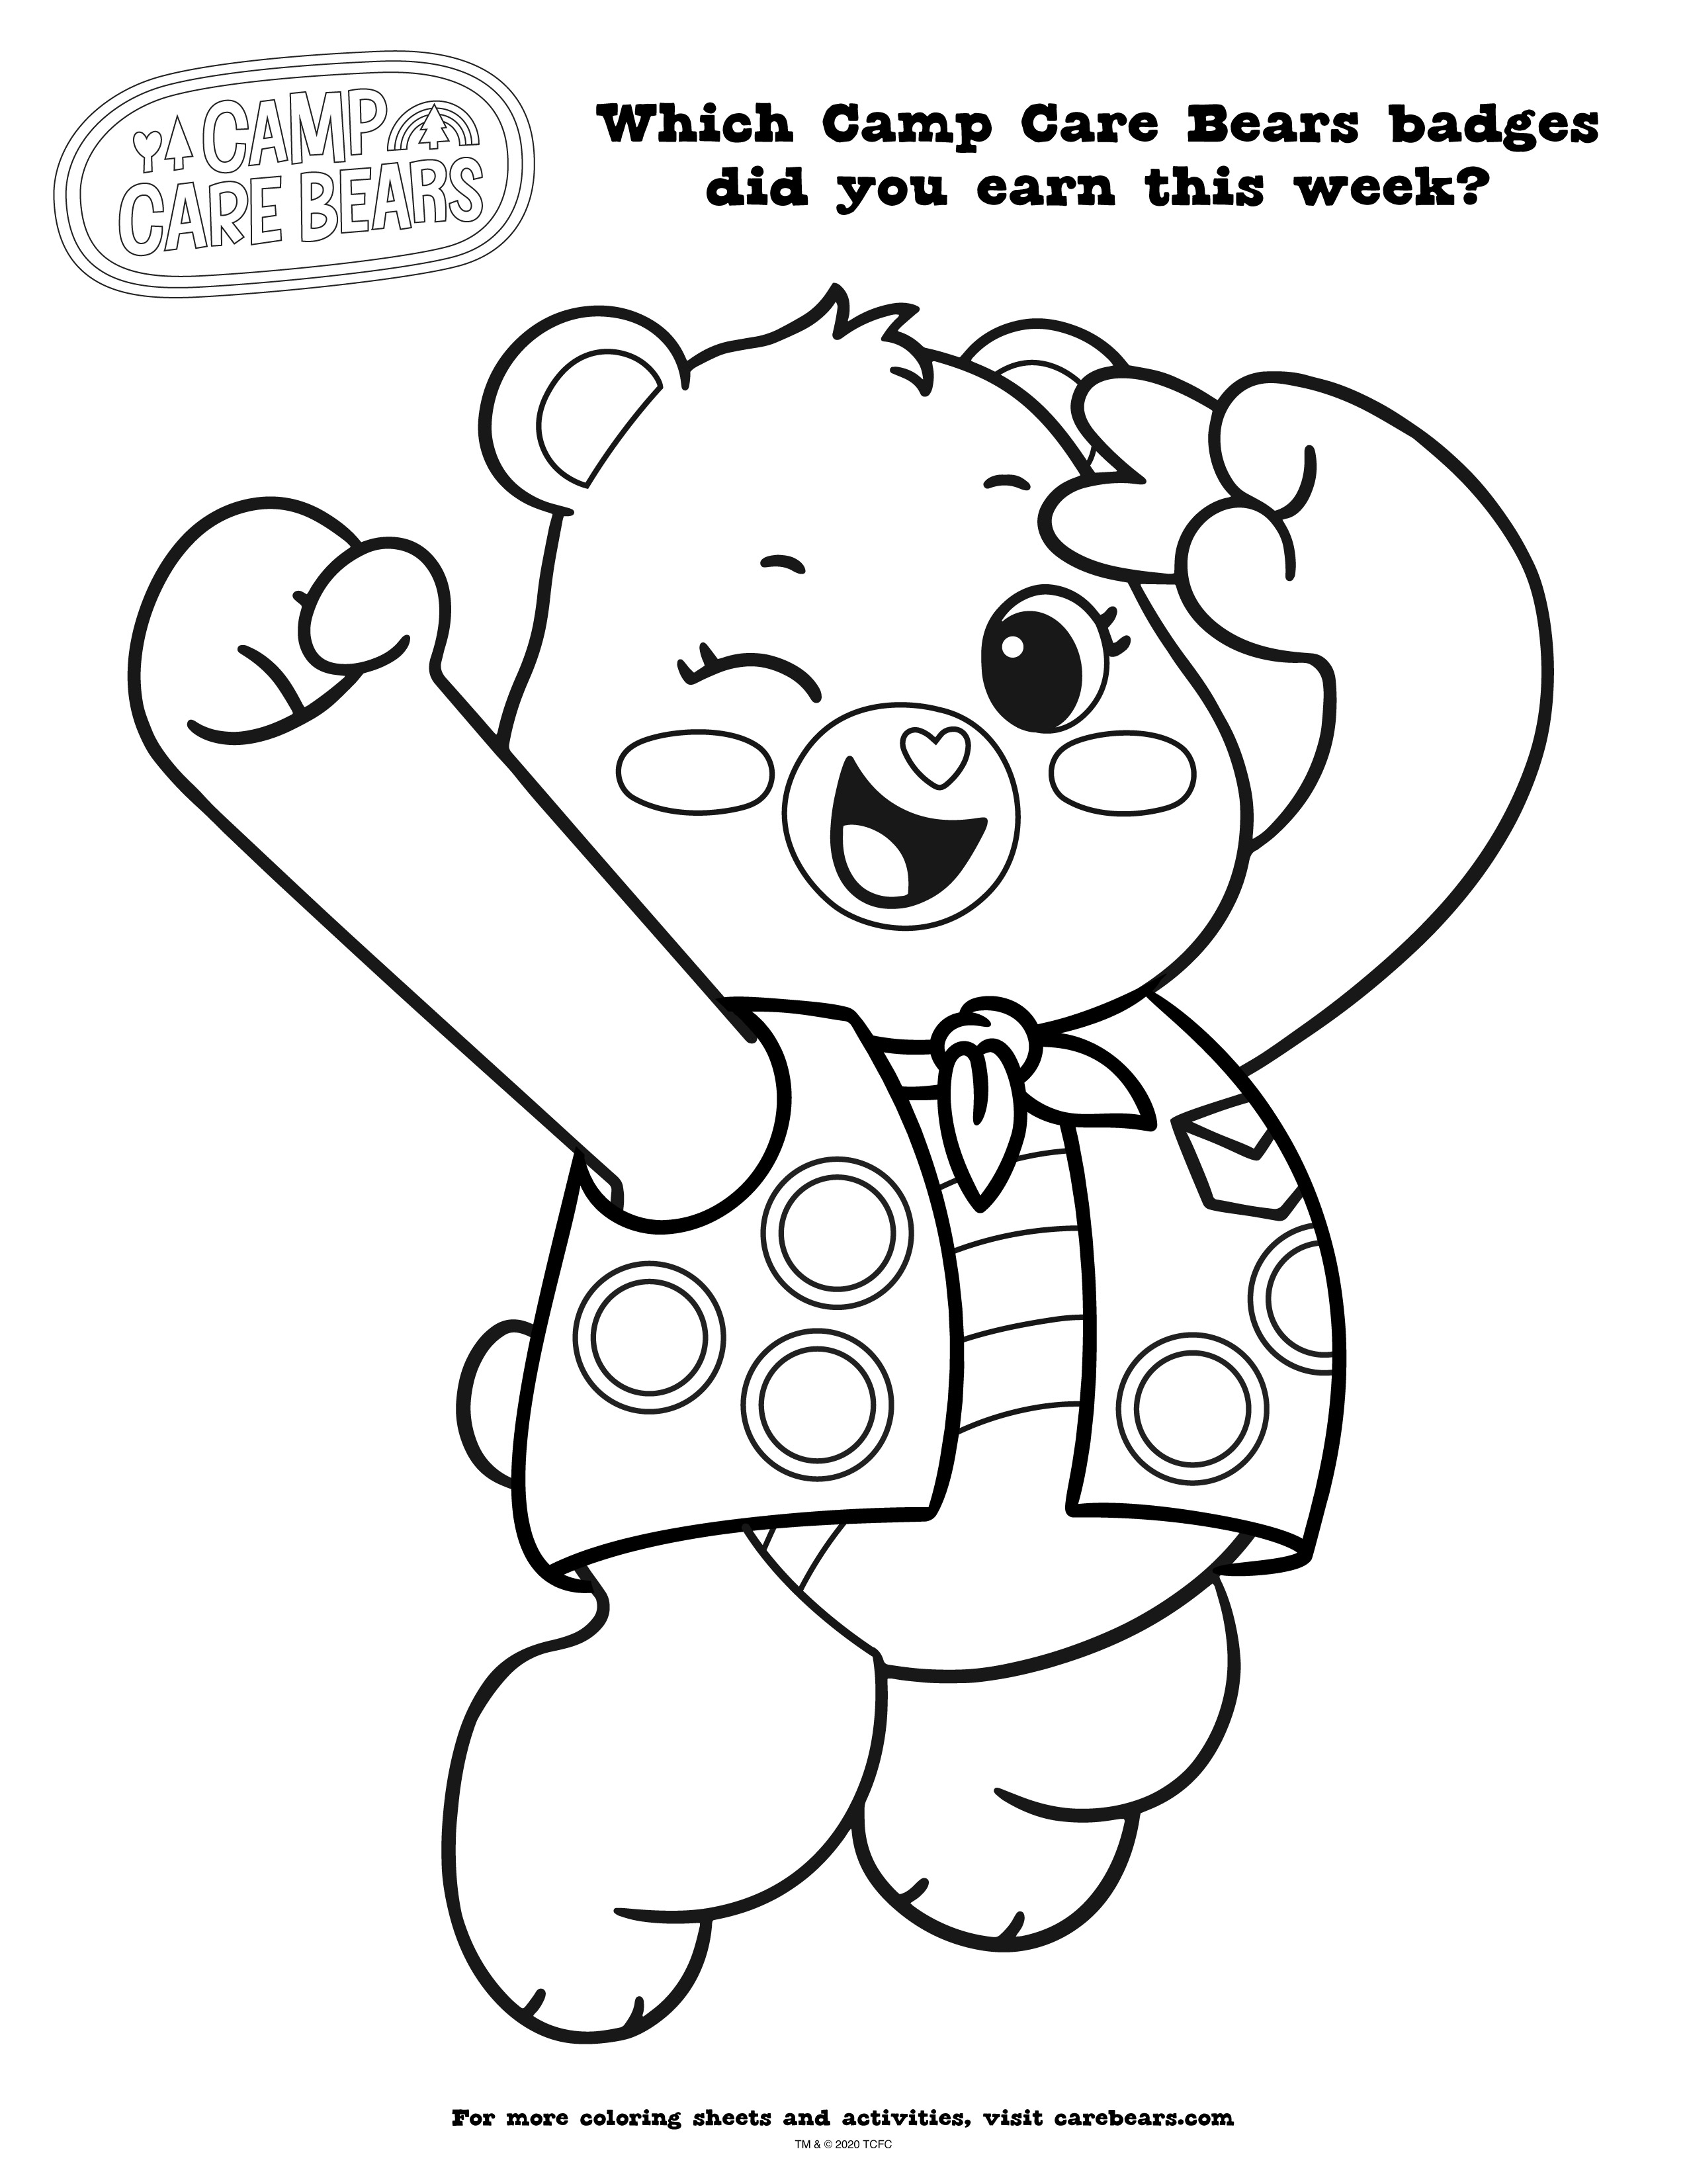 Free Pictures Of Bears To Color, Download Free Clip Art, Free Clip Art on  Clipart Library | 3301x2550